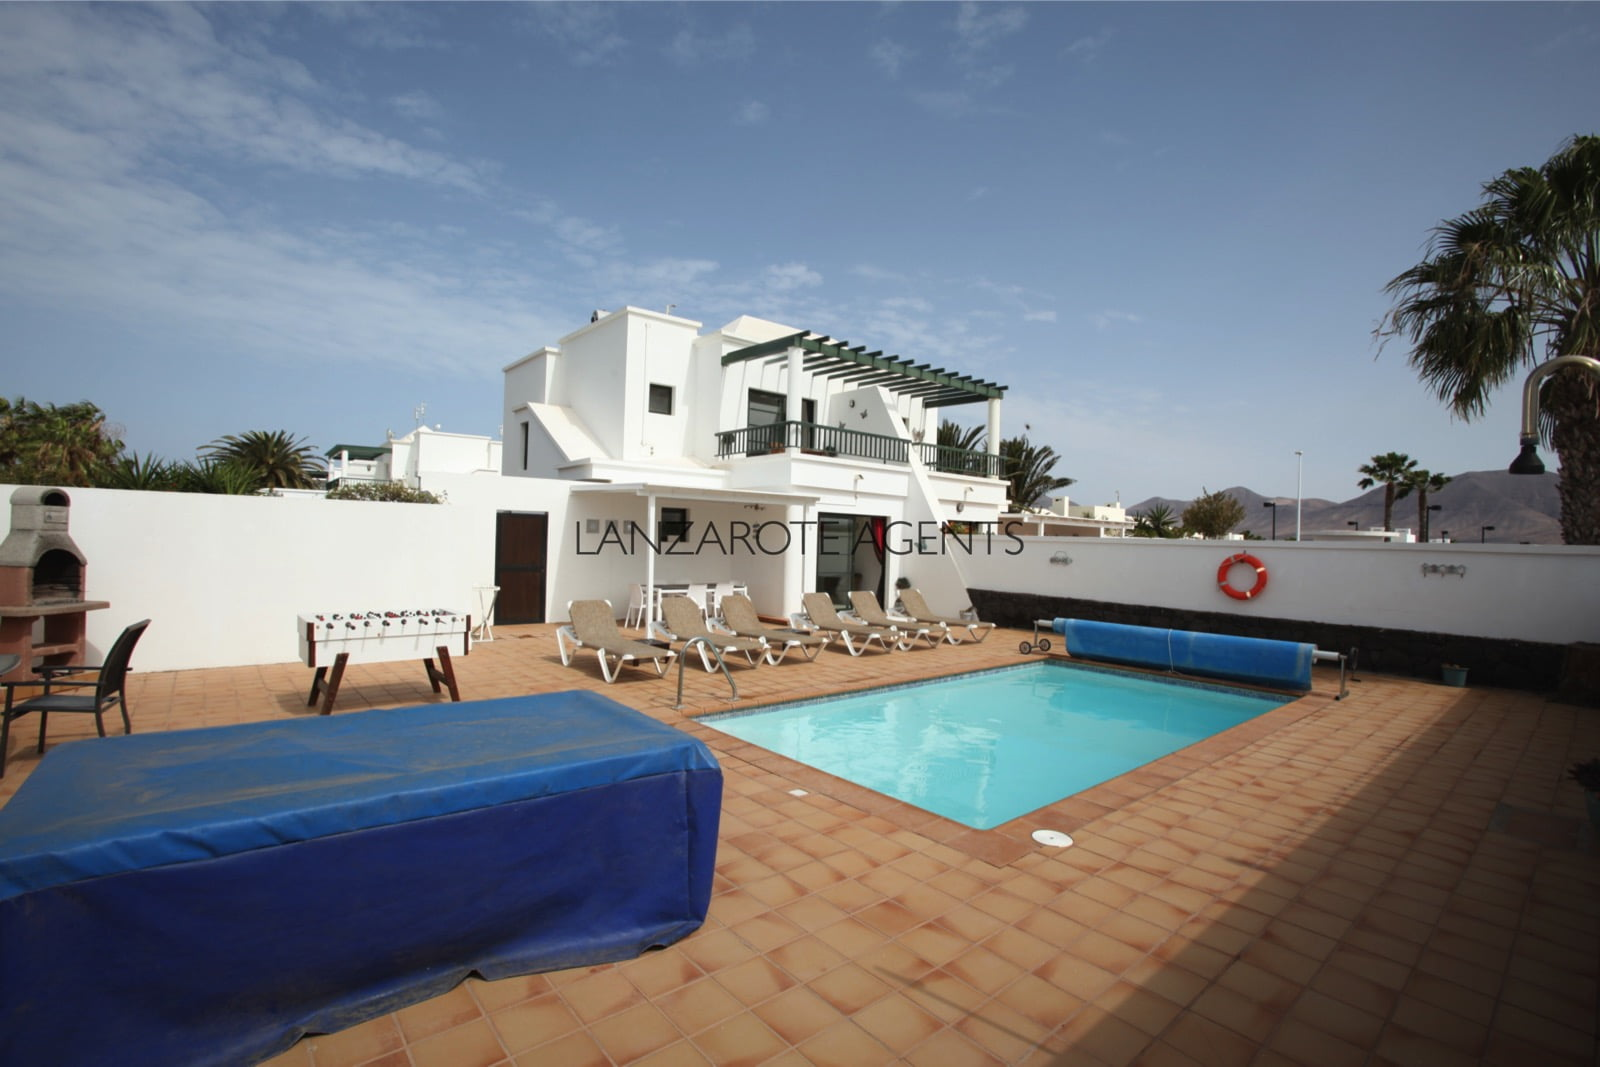 Lovely 3 Bedroom Semi Detached Villa Near Playa Blanca Town Centre with Tourist License(Vv) and Future Bookings.